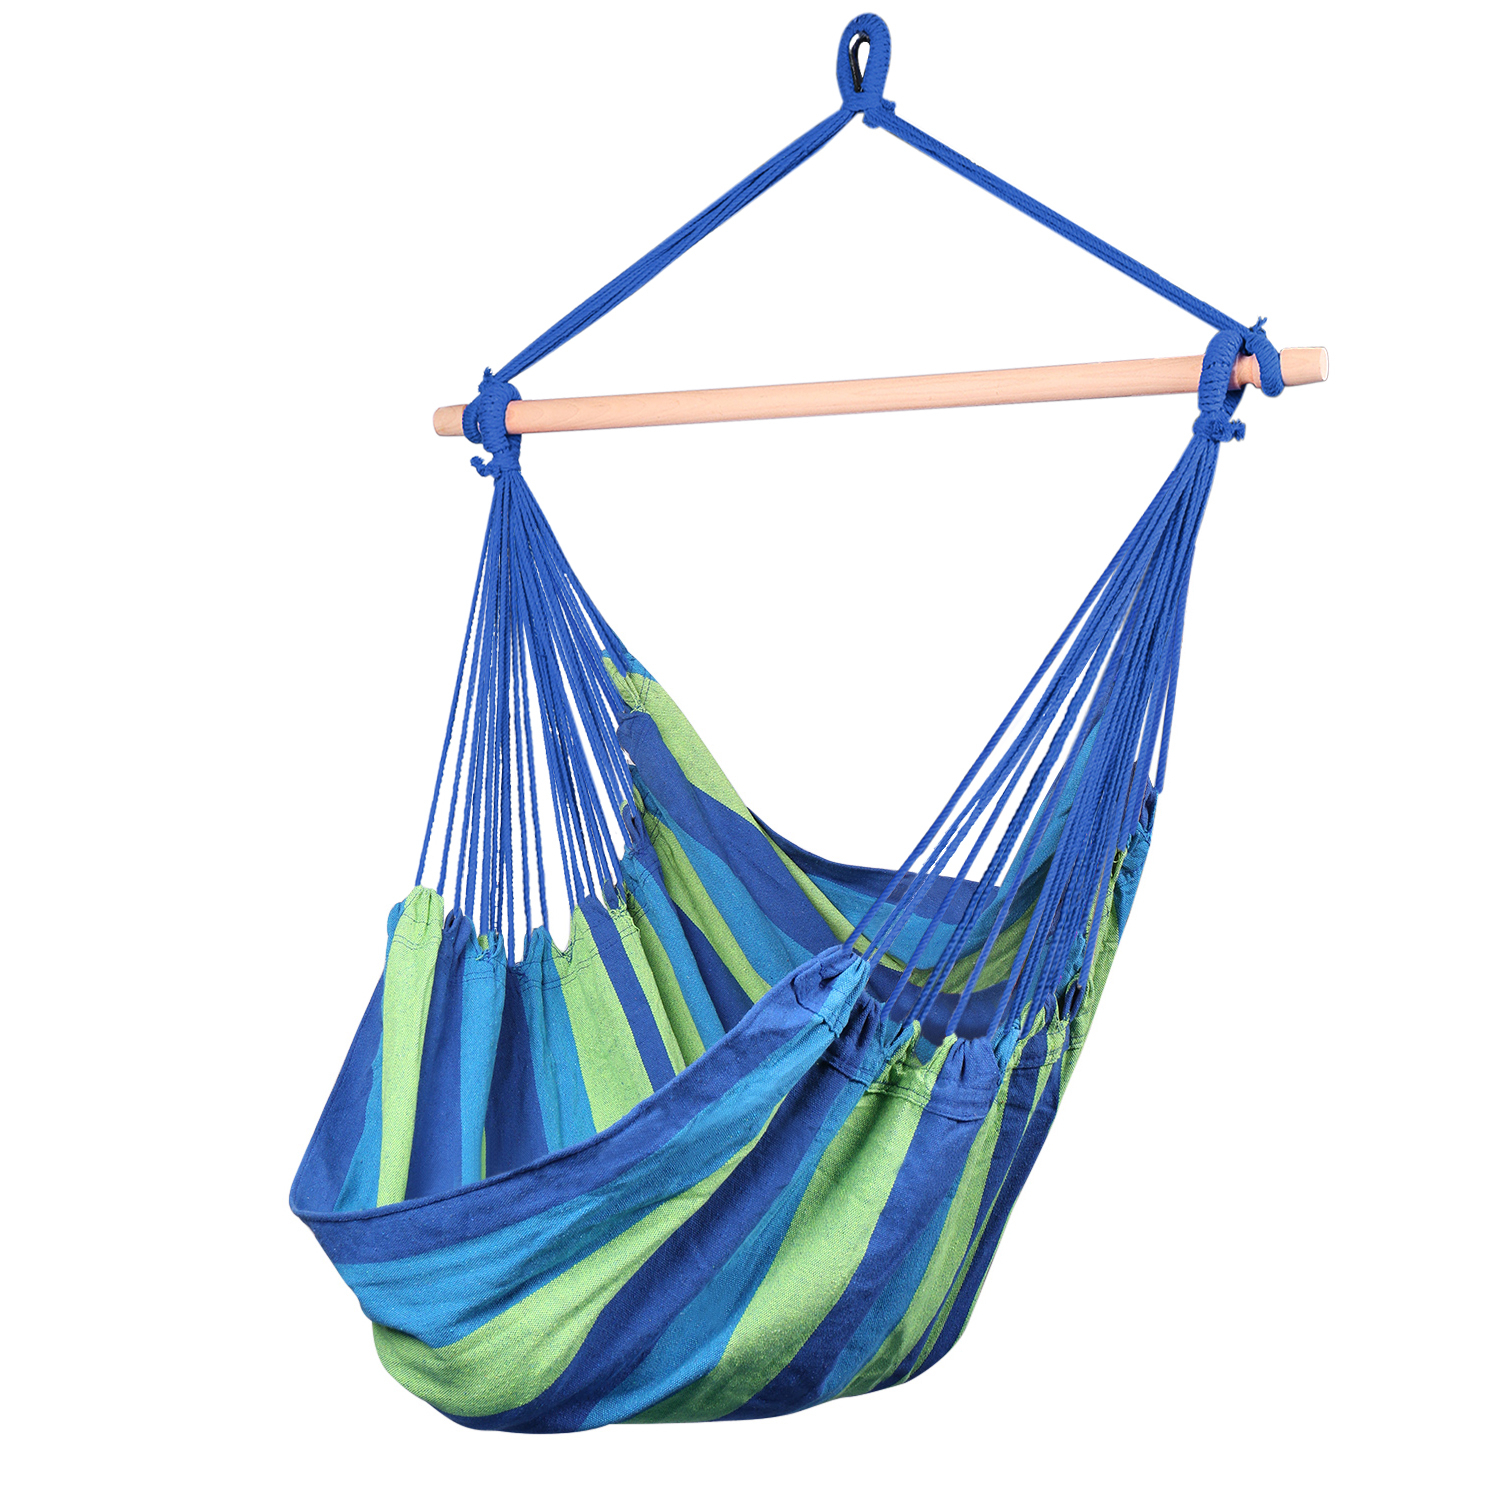 Details About Brazilian Hammock Chair, Cotton Weave Porch Swing W/ Spreader Bar, Jungle Blue Intended For Cotton Porch Swings (View 3 of 25)